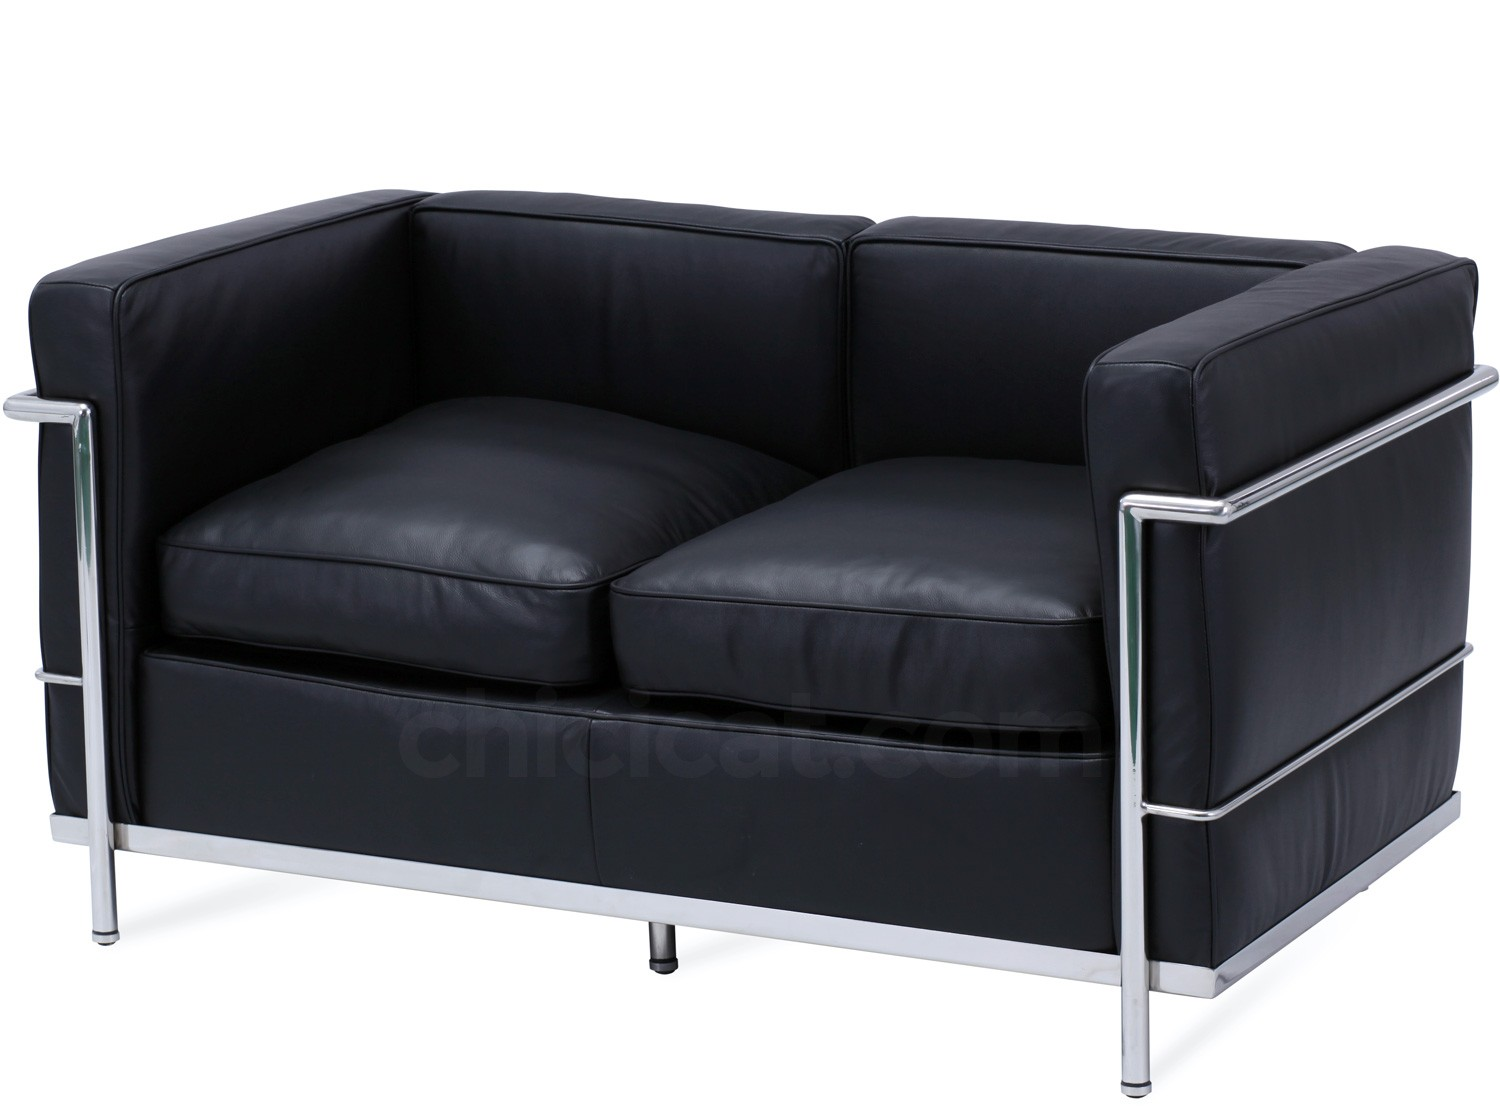 Replica Sofa Le Corbusier Lc2 Sofa 2 Seater Petit Confort Platinum Replica